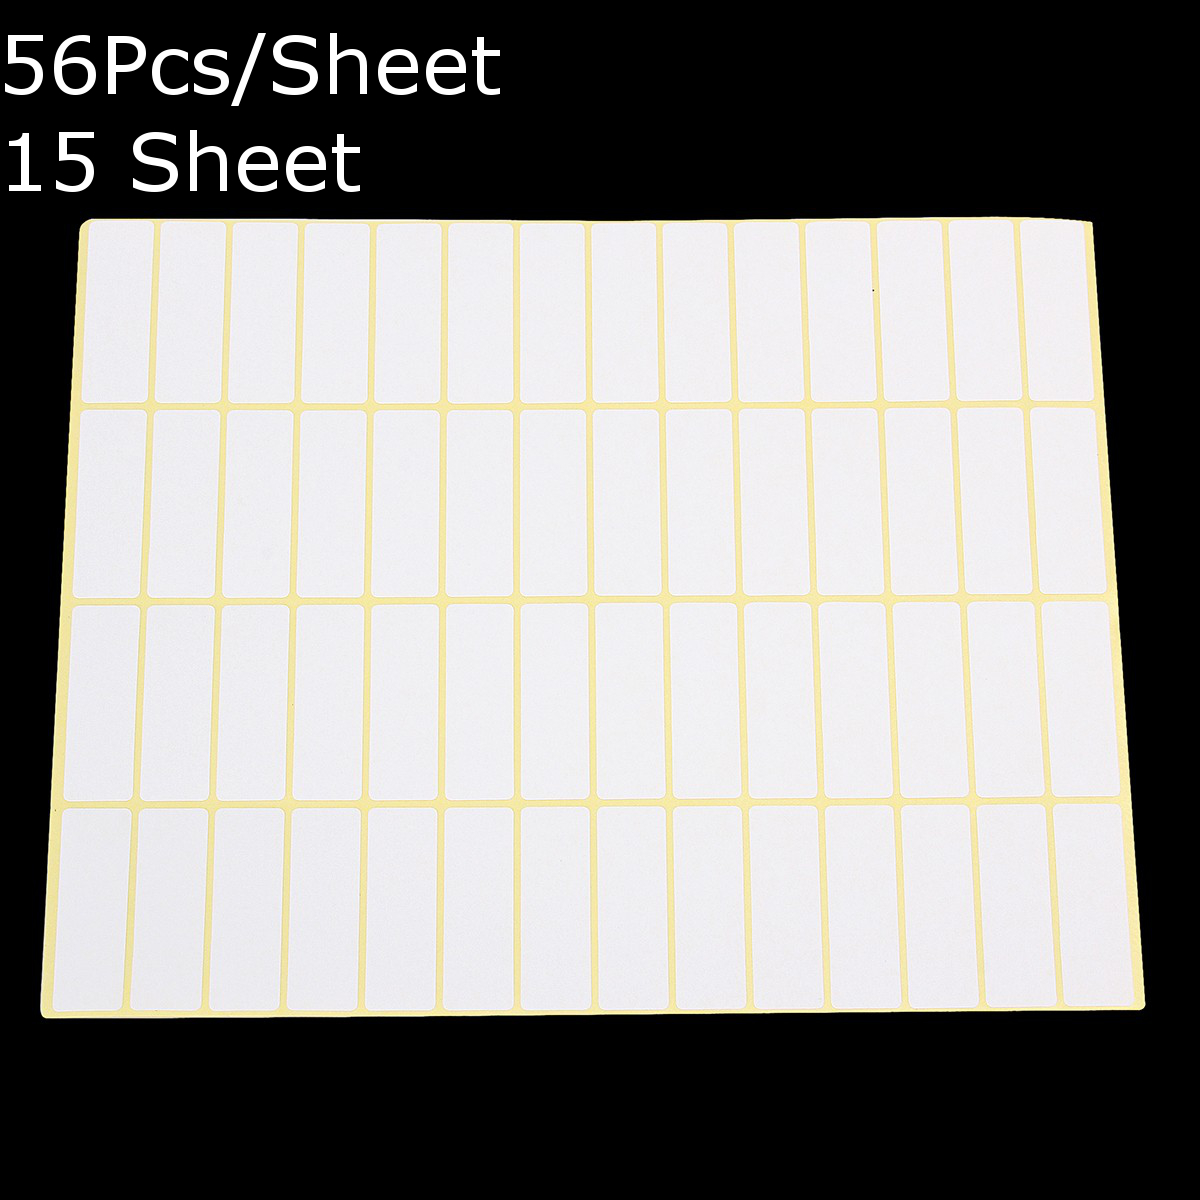 56Pcs/Sheet Blank Sticky Labels 13x38MM White Price Stickers Tags 15 Sheets